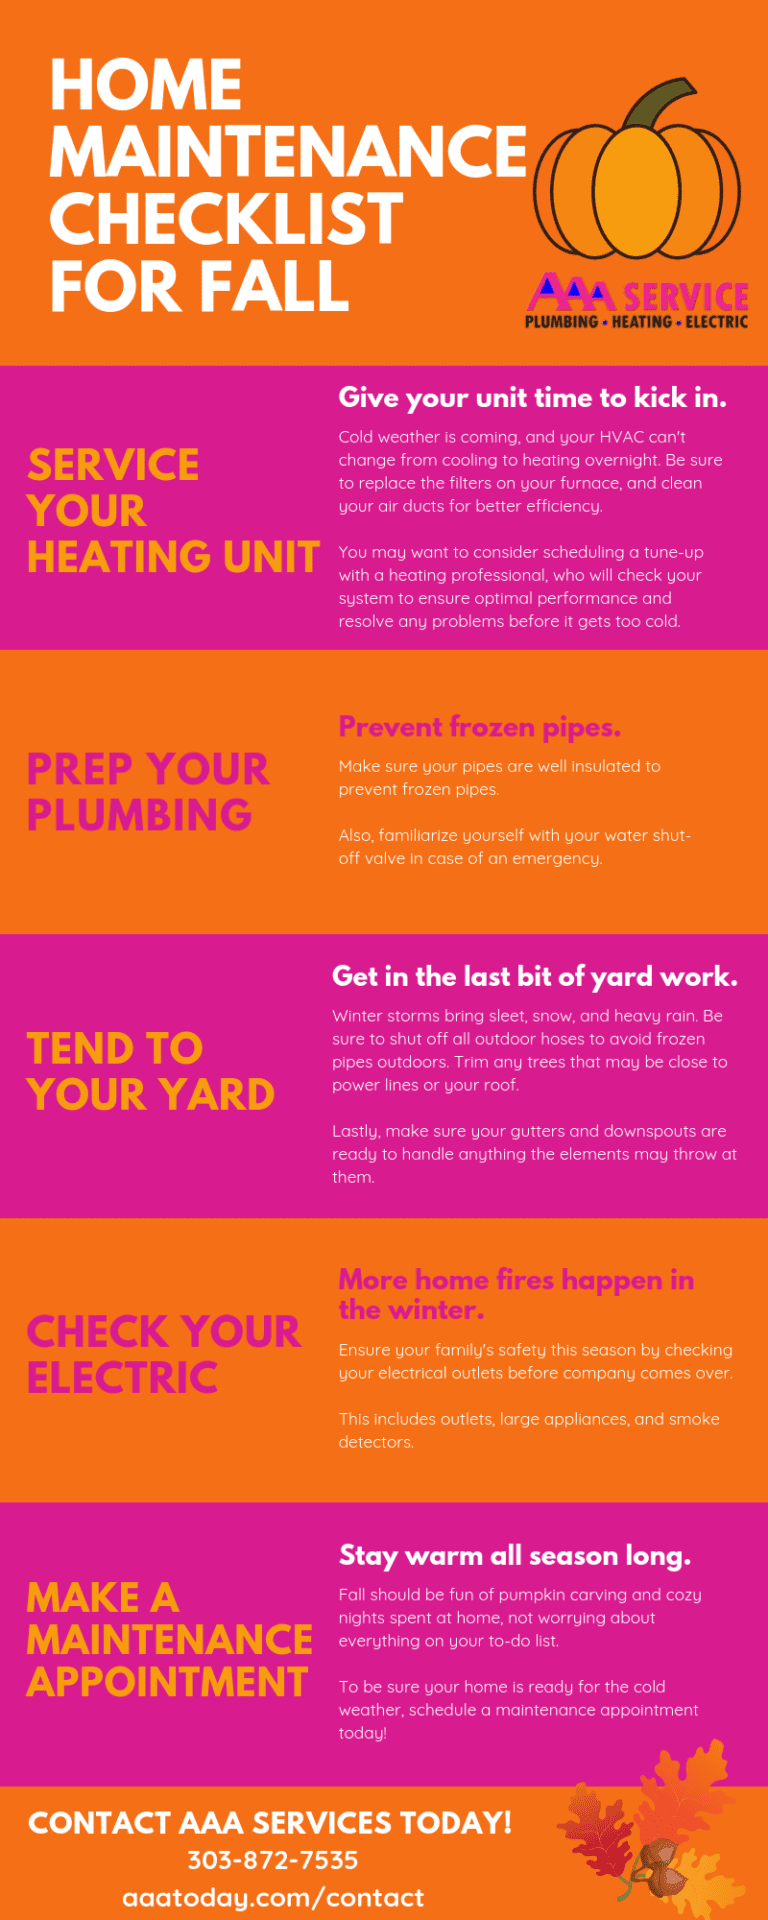 Home Maintenance Fall Checklist Infographic